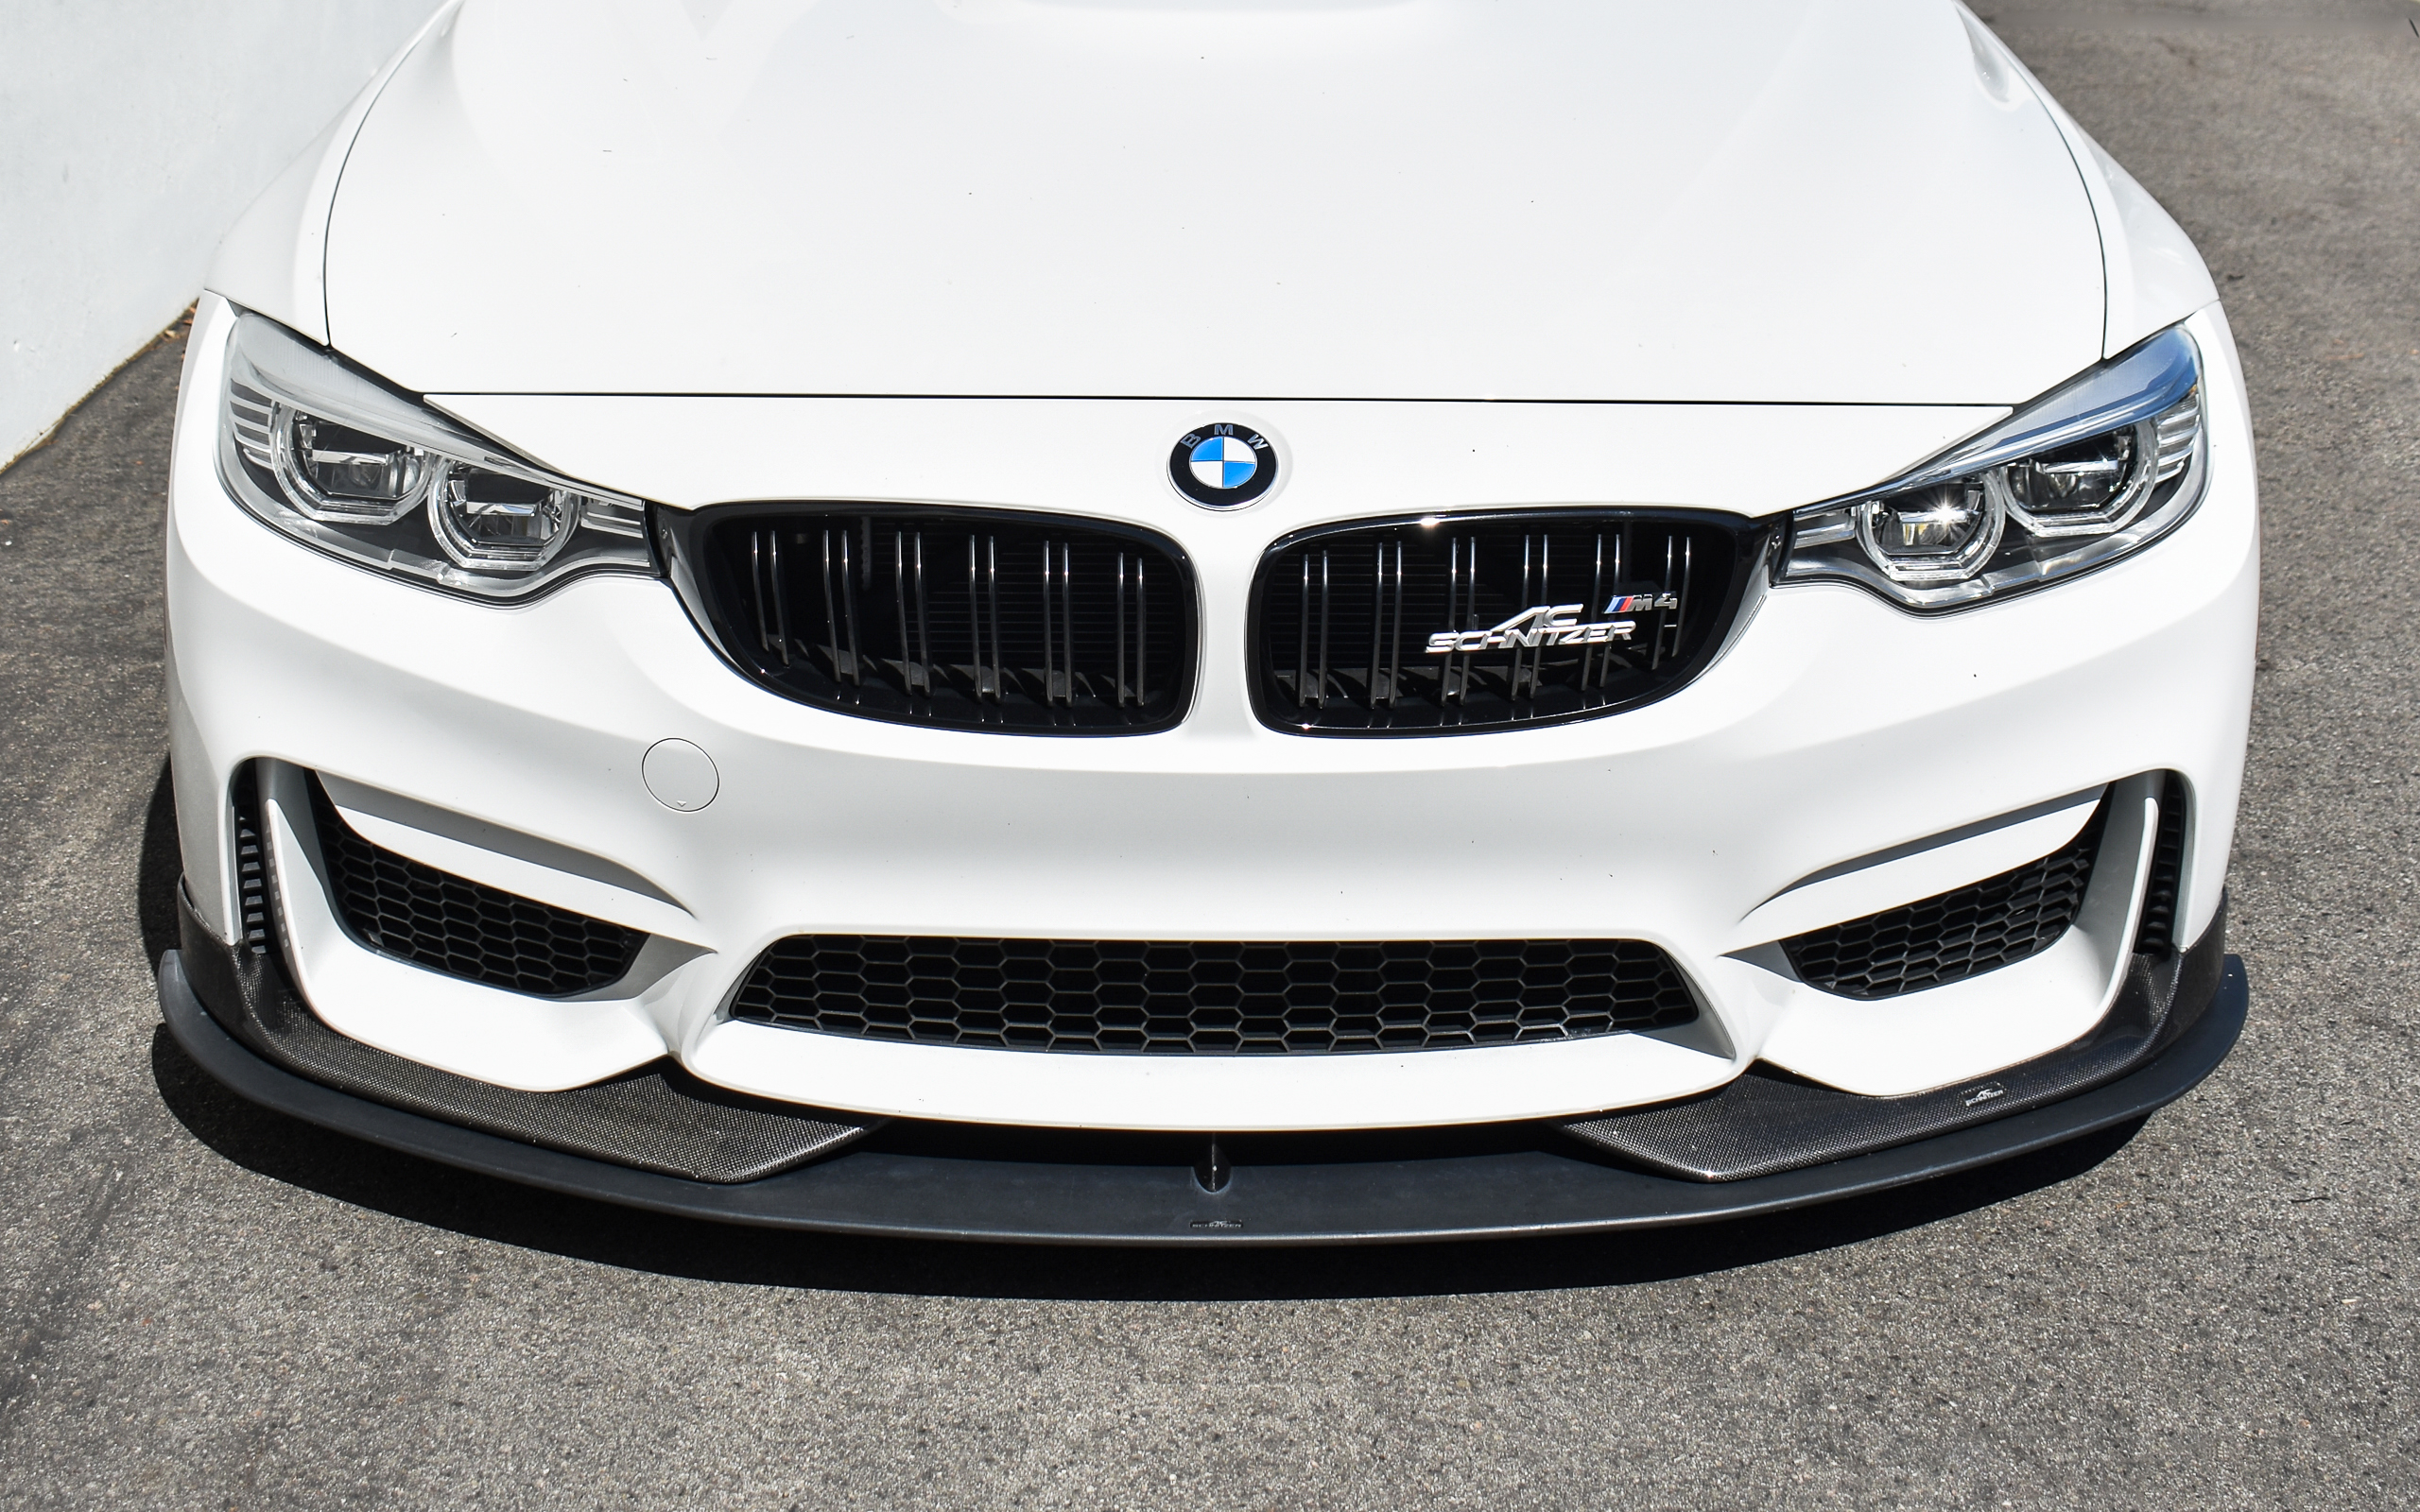 Alpine White F82 M4 - AC Schnitzer & Moton Suspension